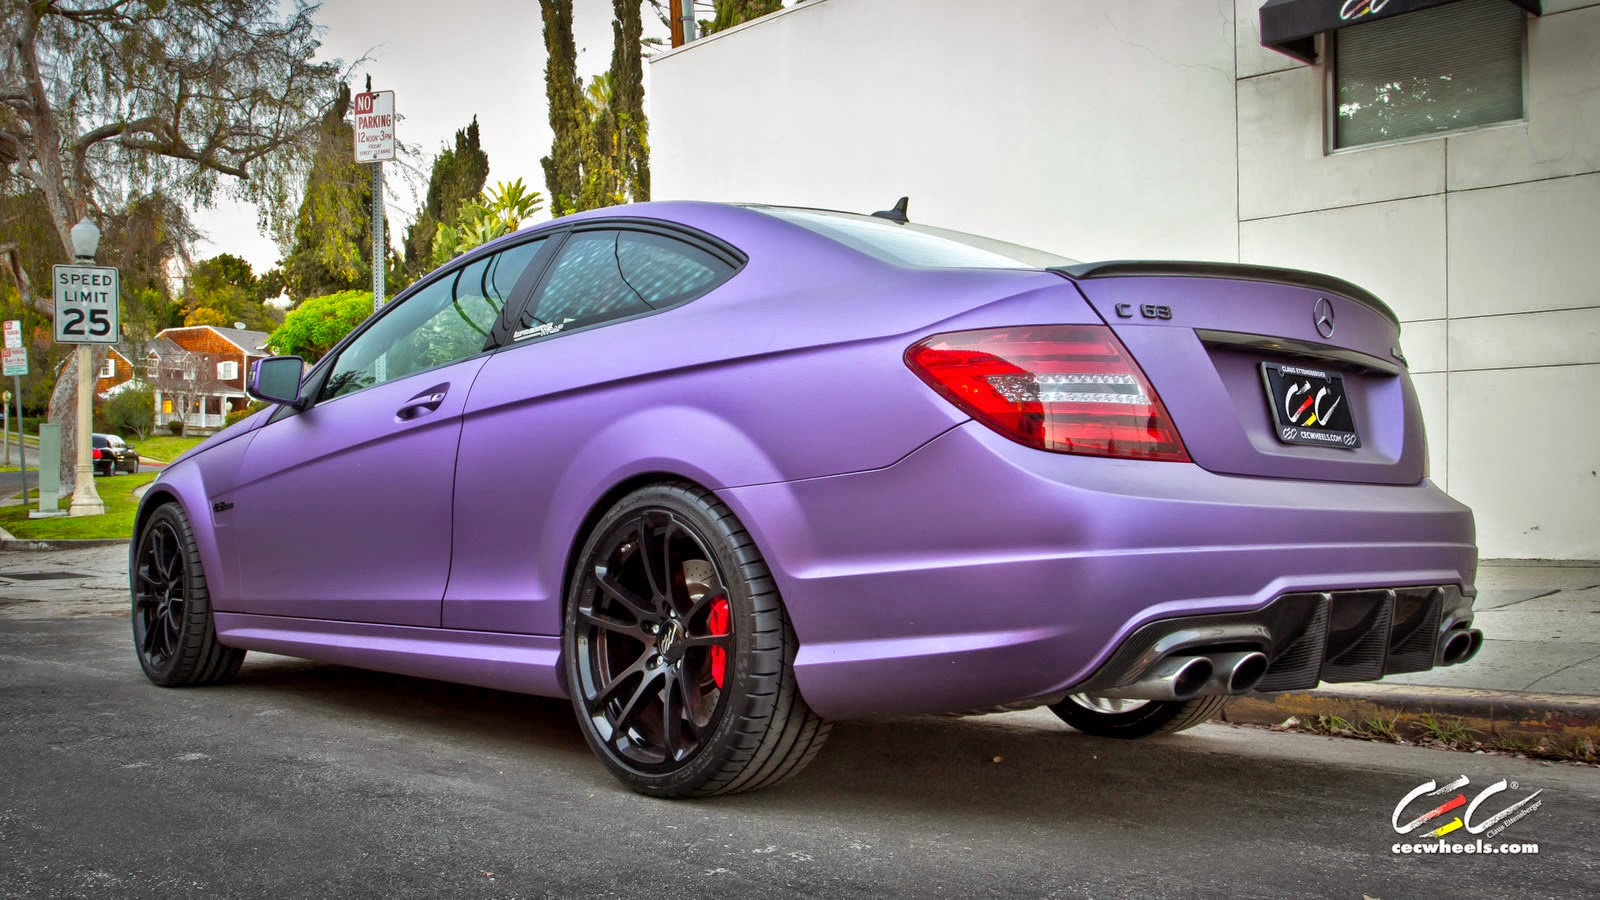 Mercedes benz w204 c63 amg coupe purple matte on cec for Matte mercedes benz